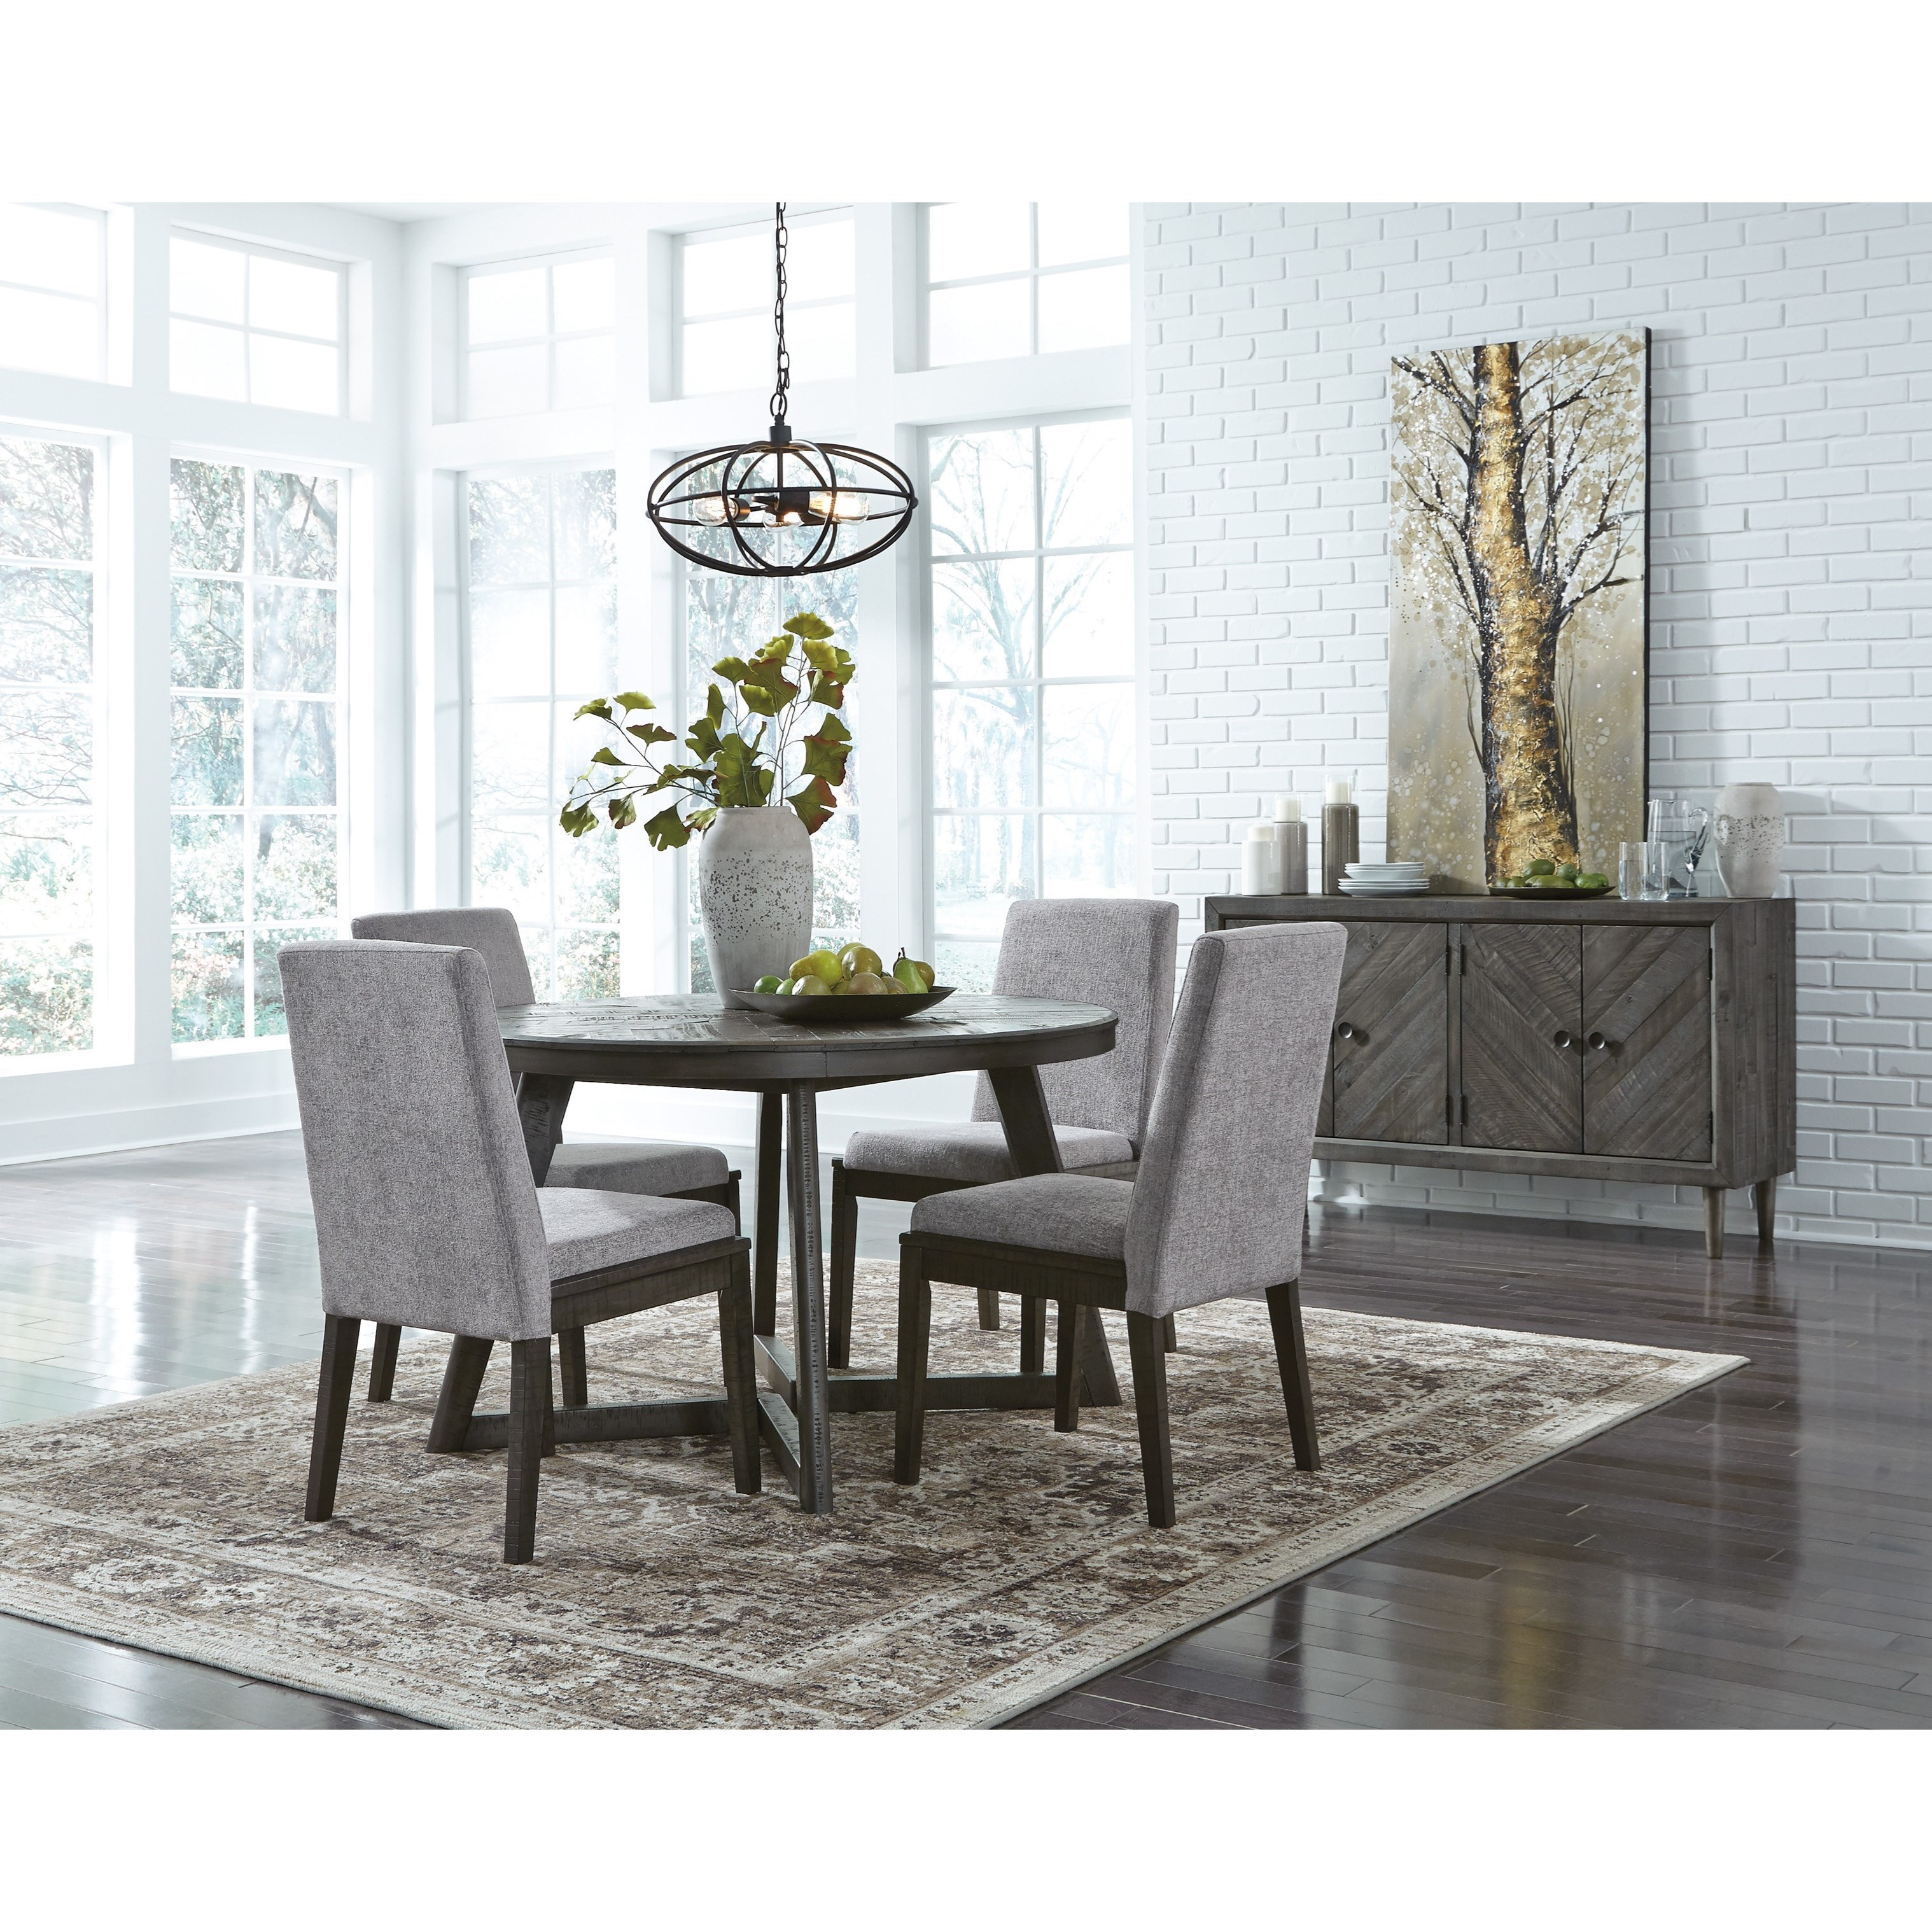 Signature Design By Ashley Besteneer Formal Dining Room